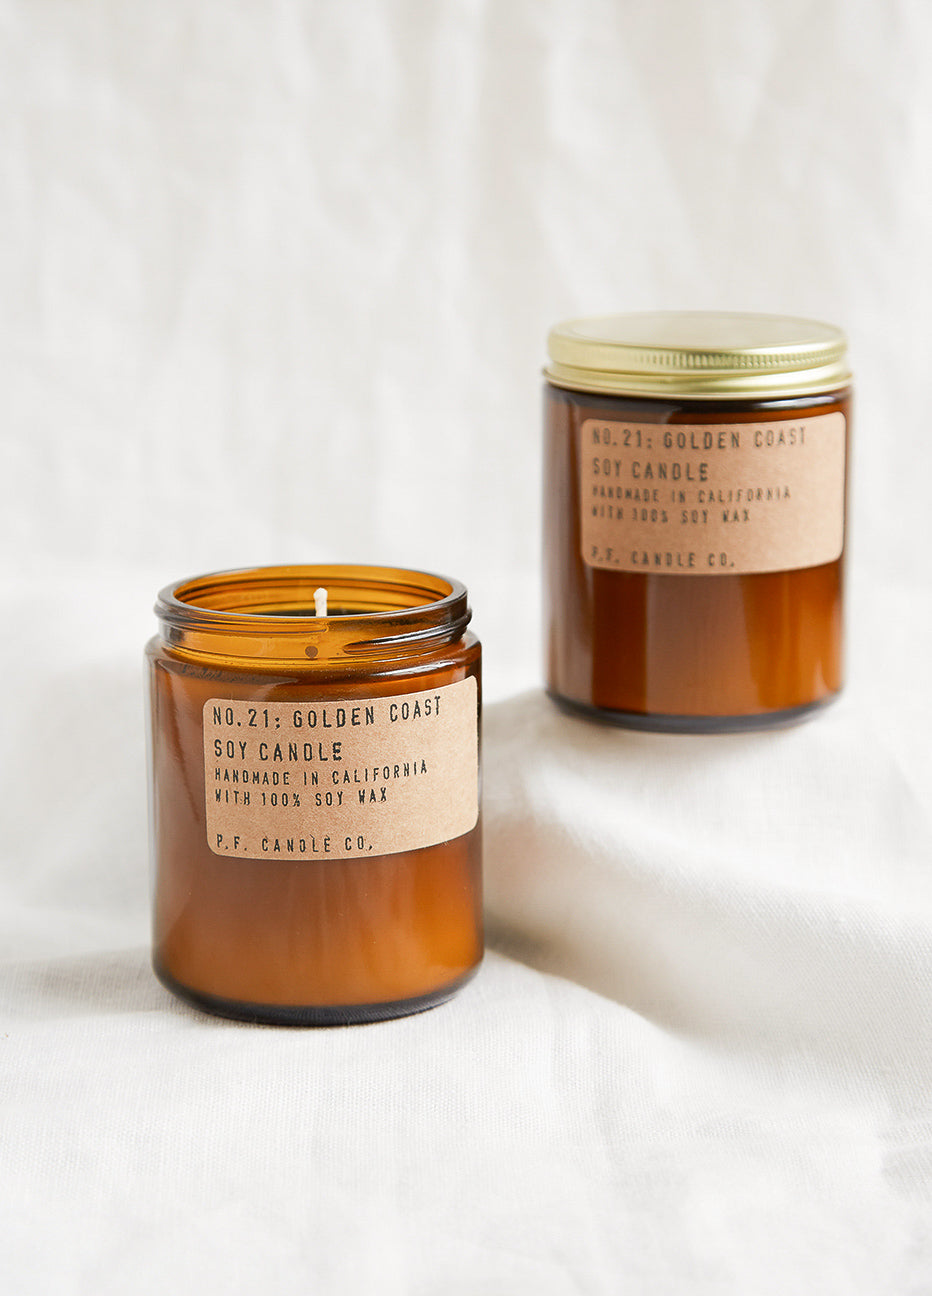 P.F. Candle Co Golden Coast